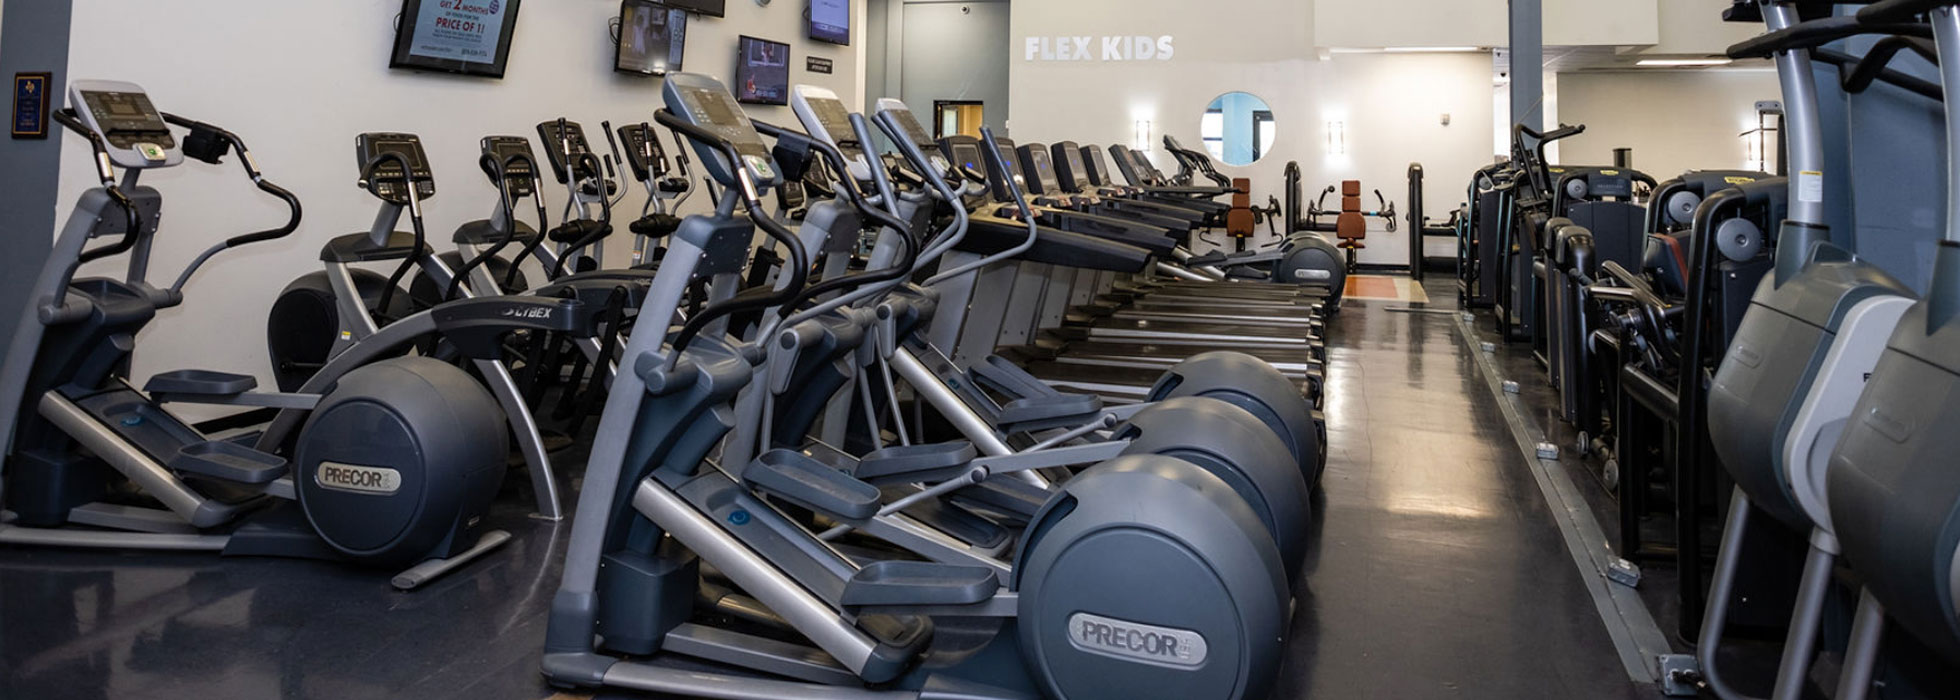 Why Flex Fit Gym Is Ranked One Of The Best Gyms In Cedar Park TX